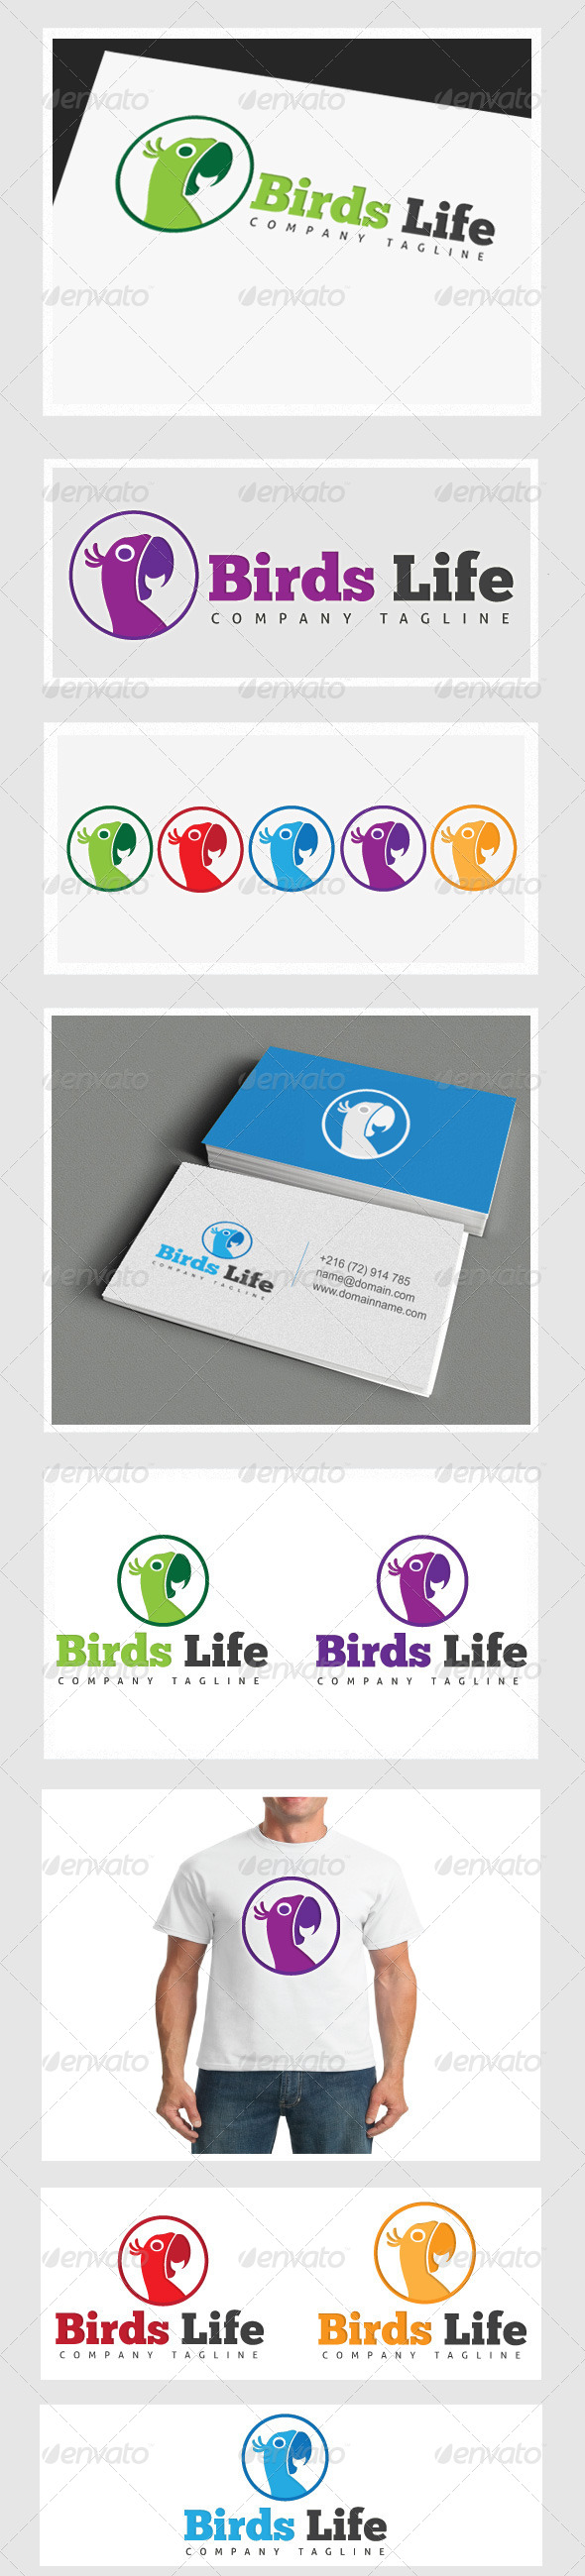 GraphicRiver Birds Life 4126781